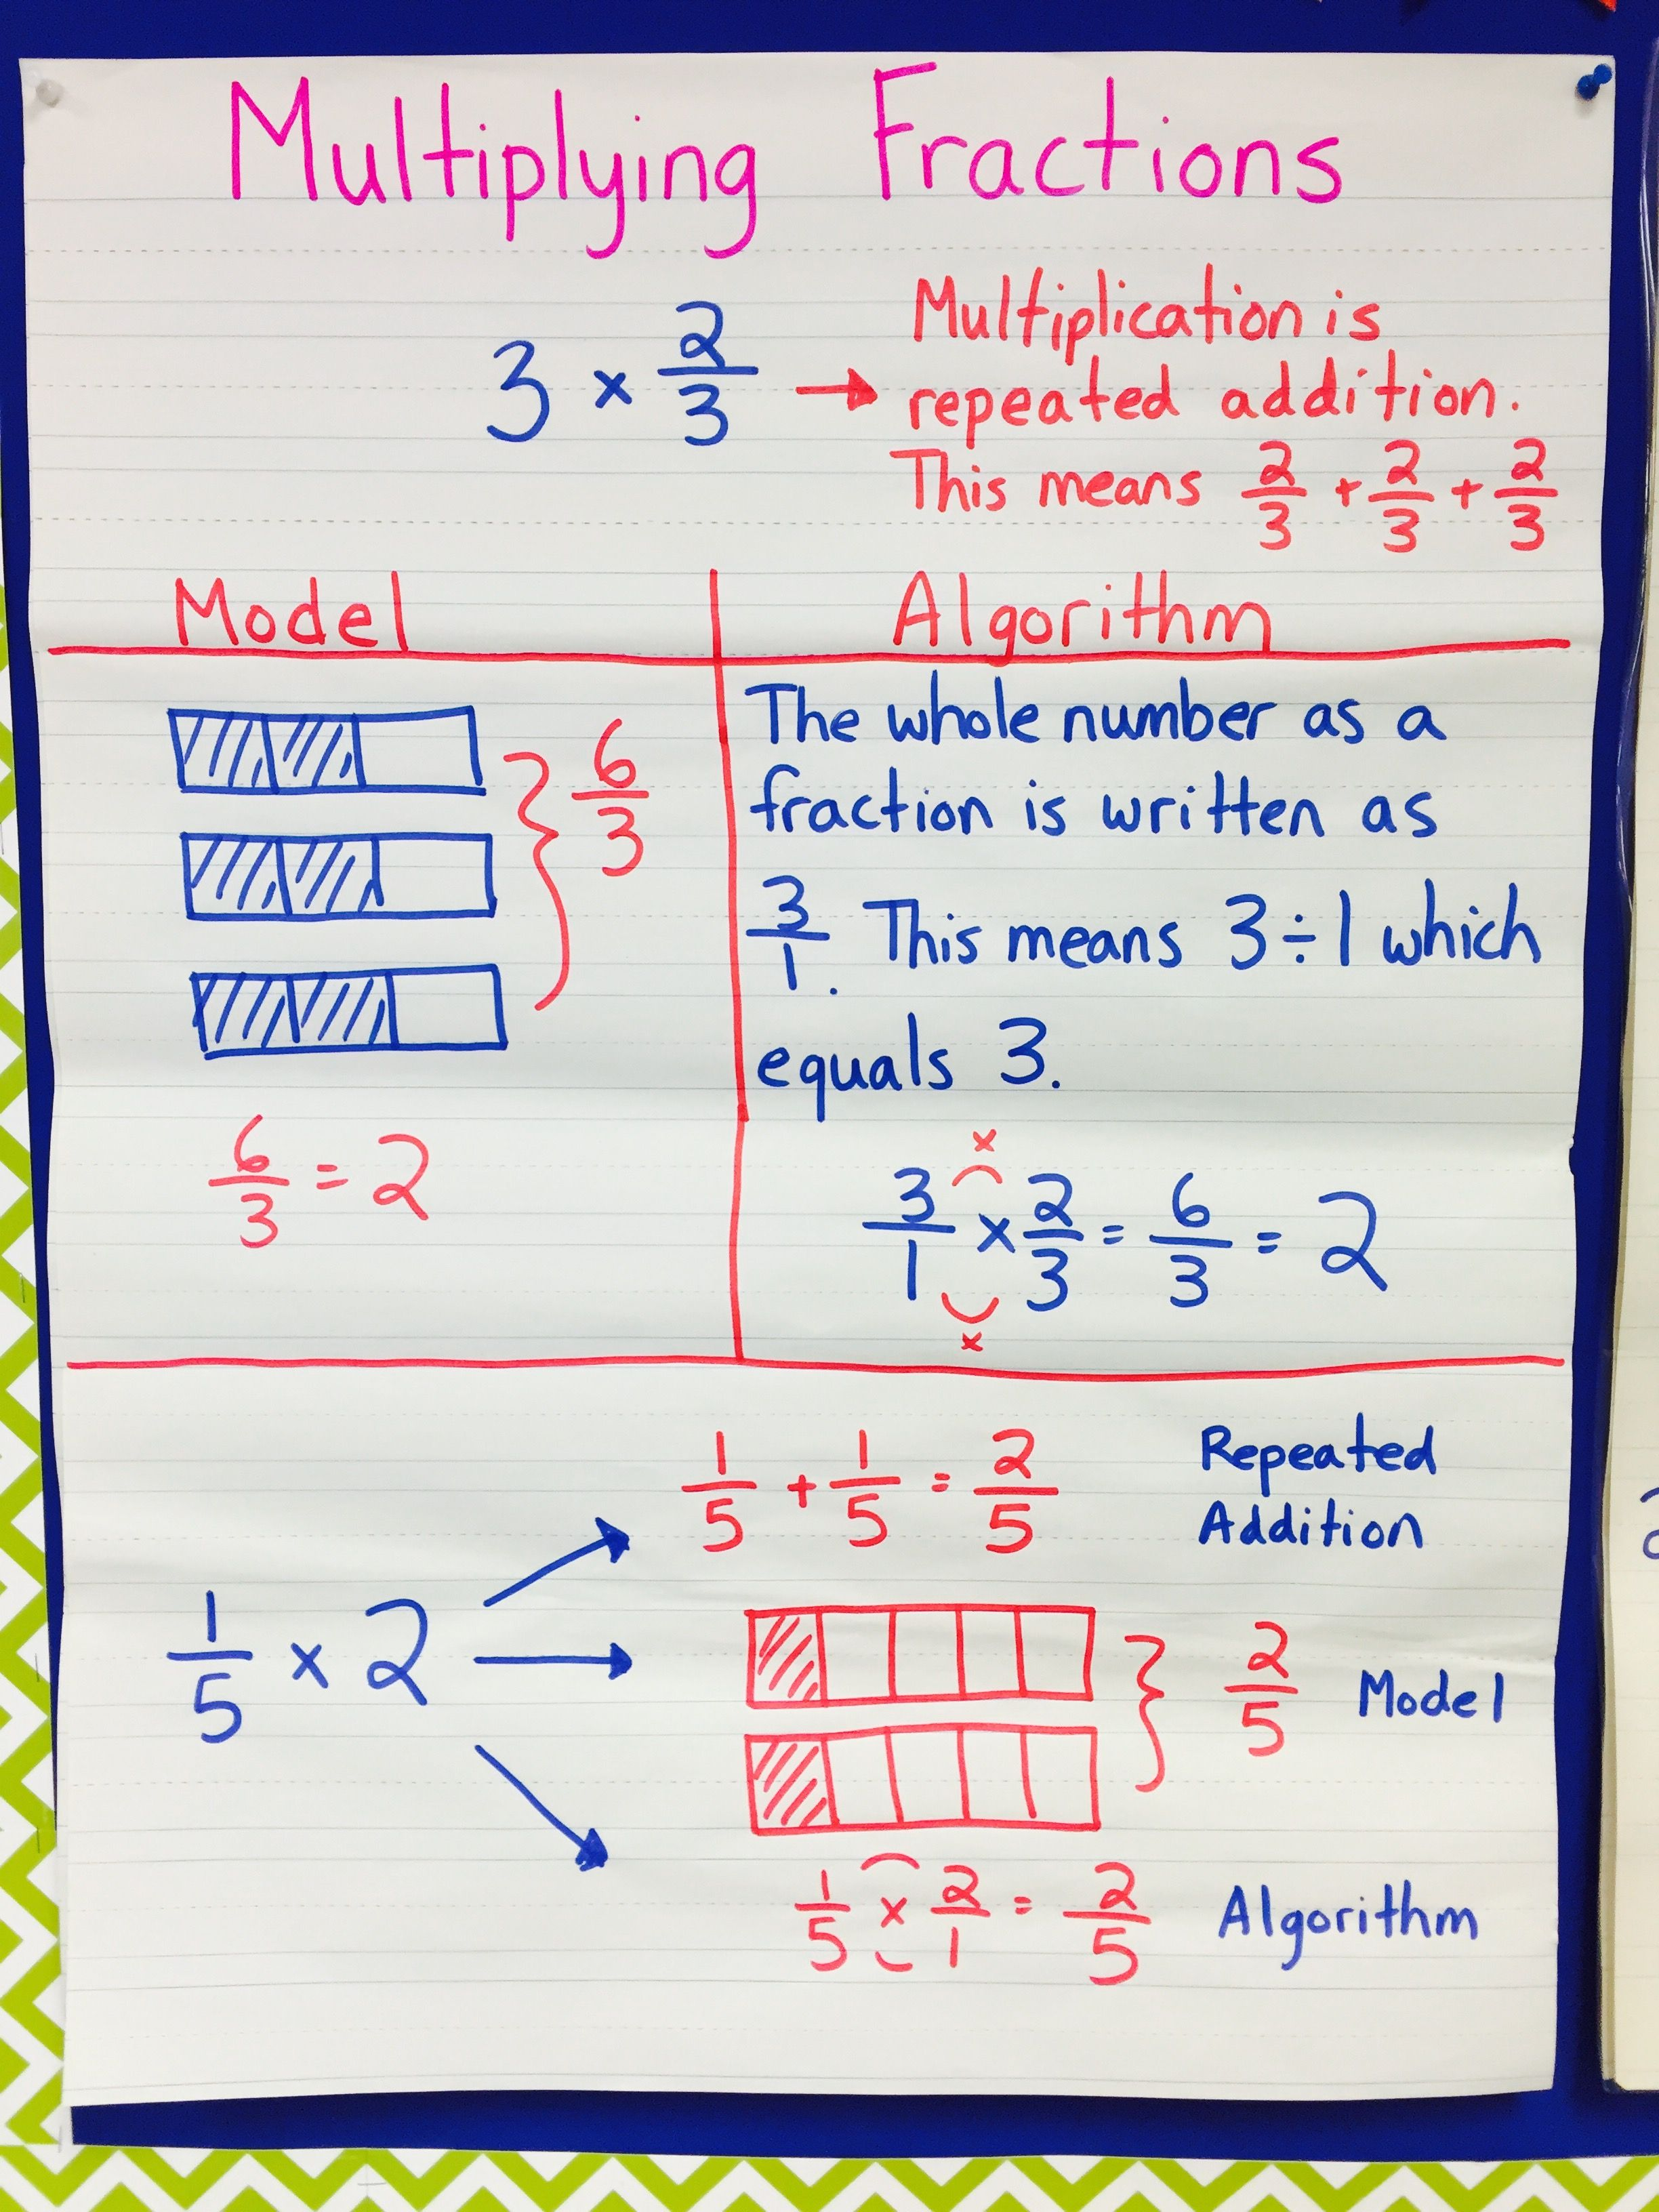 Multiplying Fractions Poster